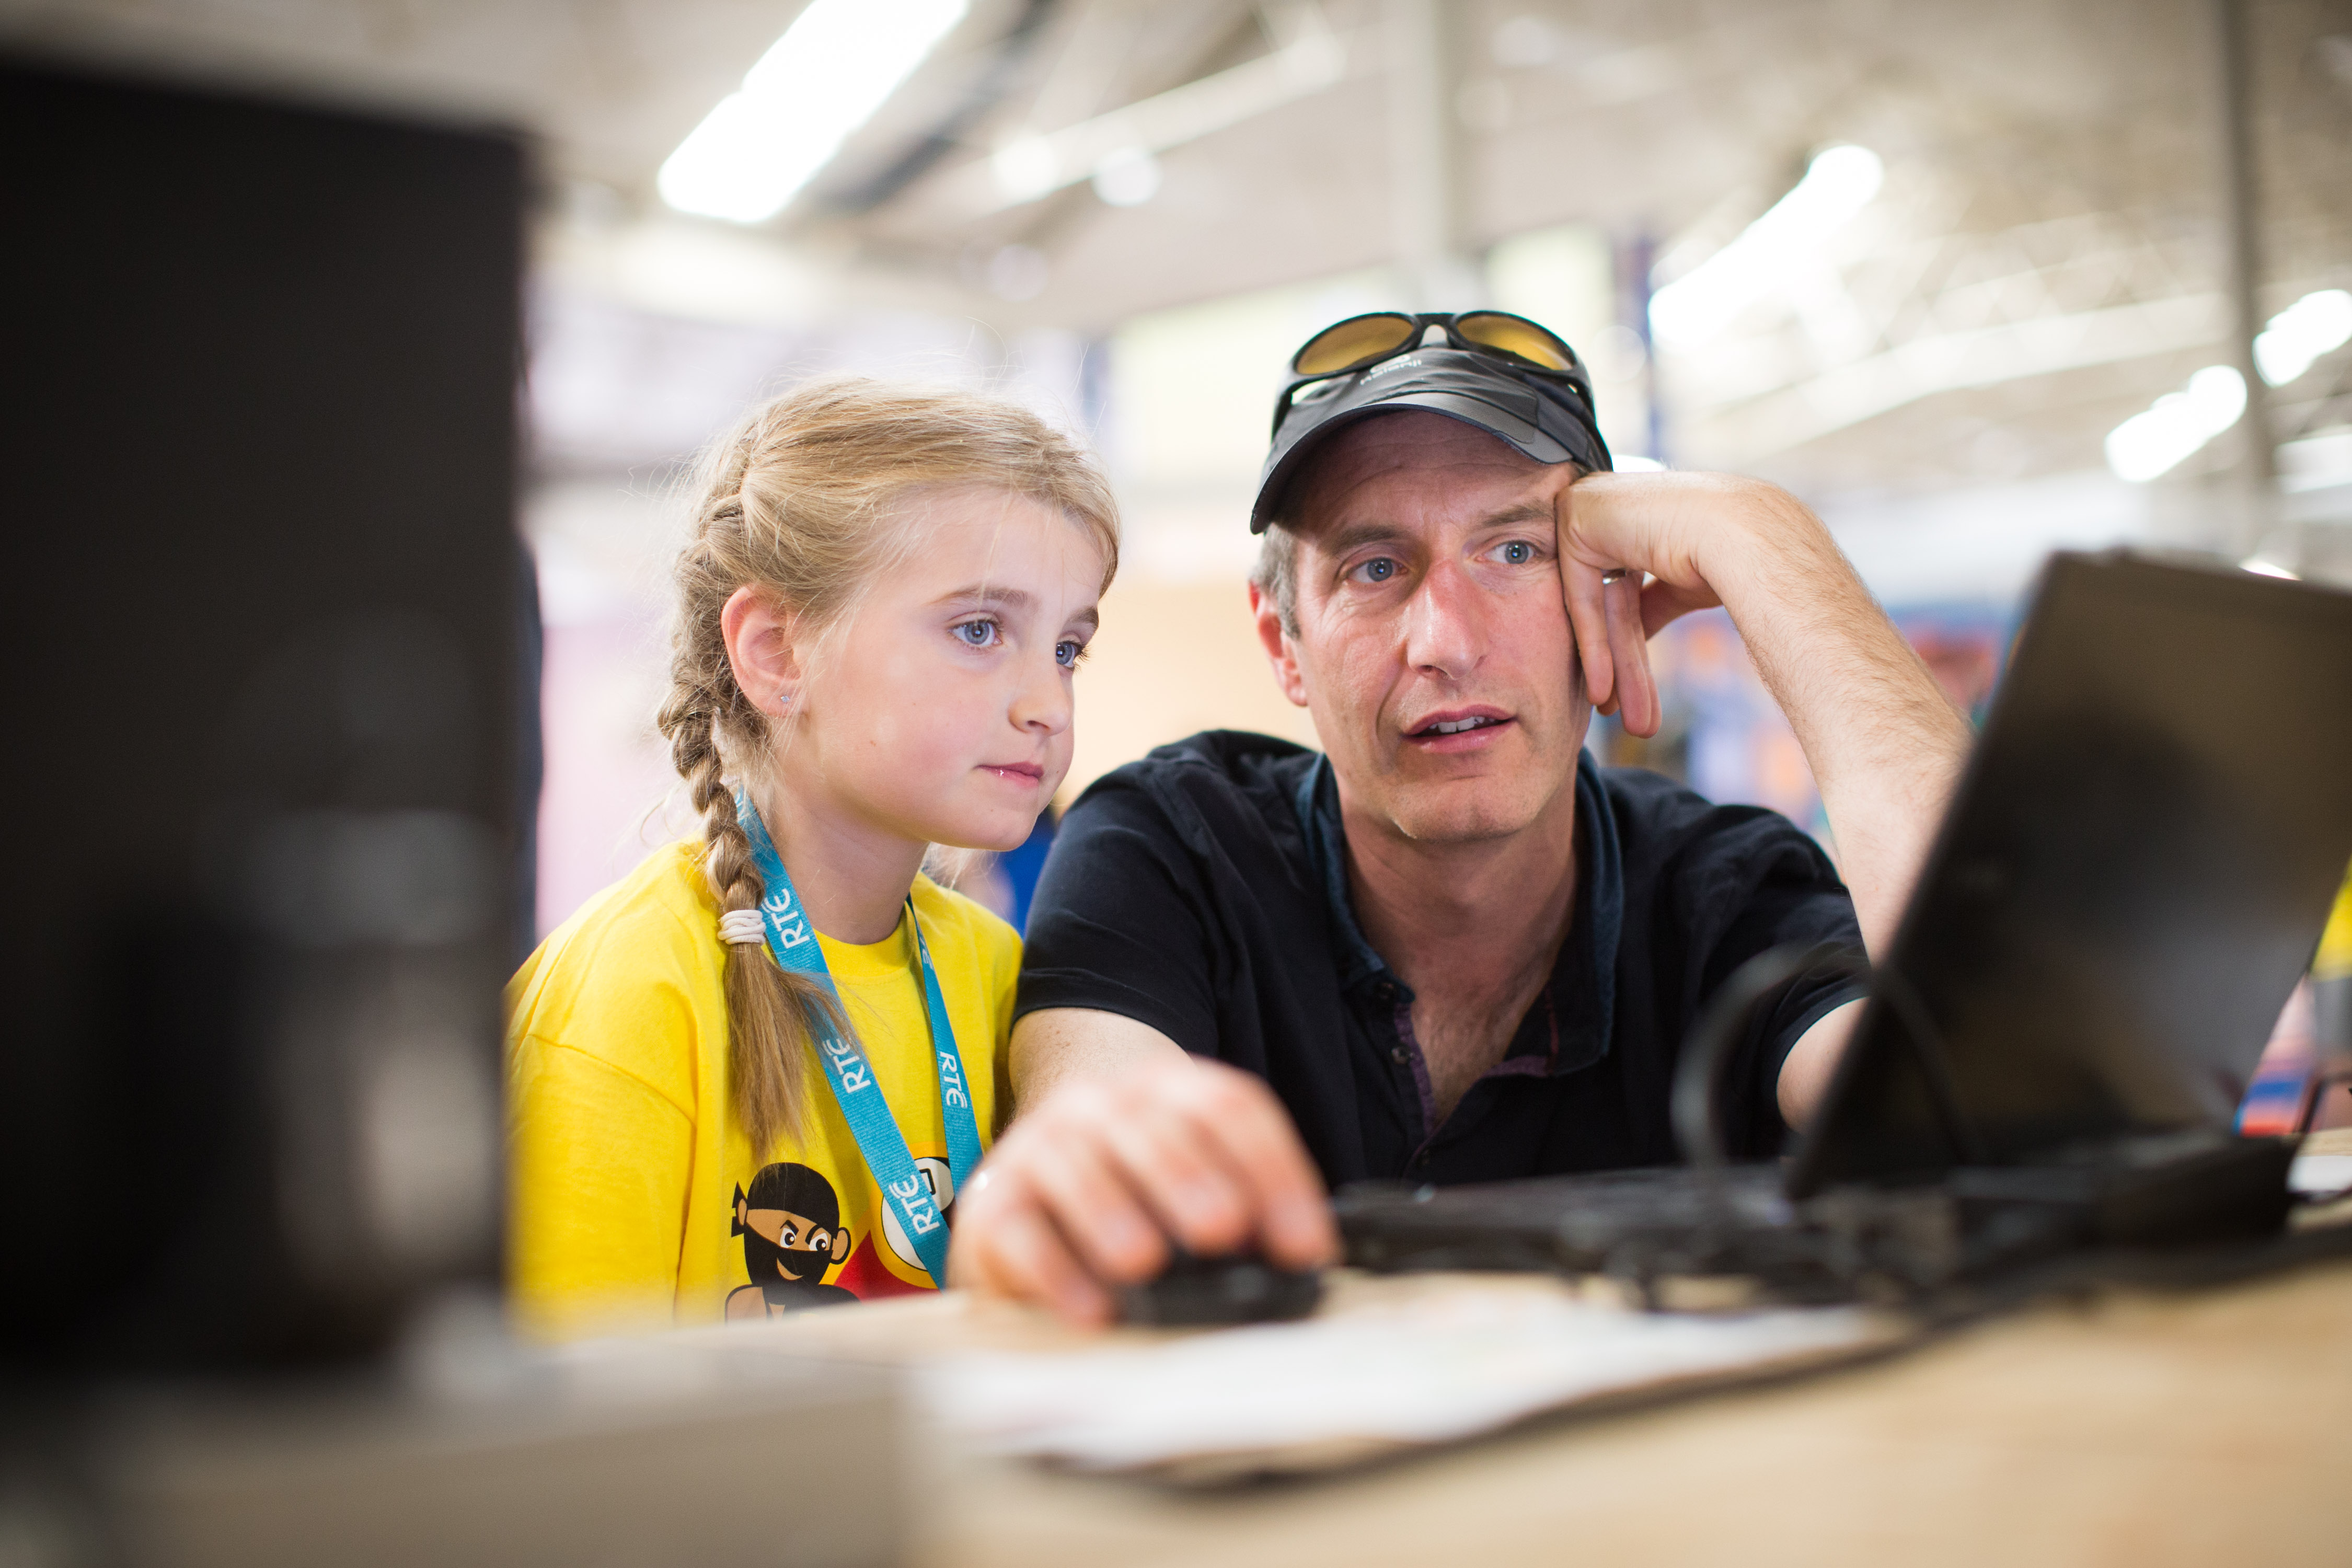 A girl and her father watching an output on a computer screen